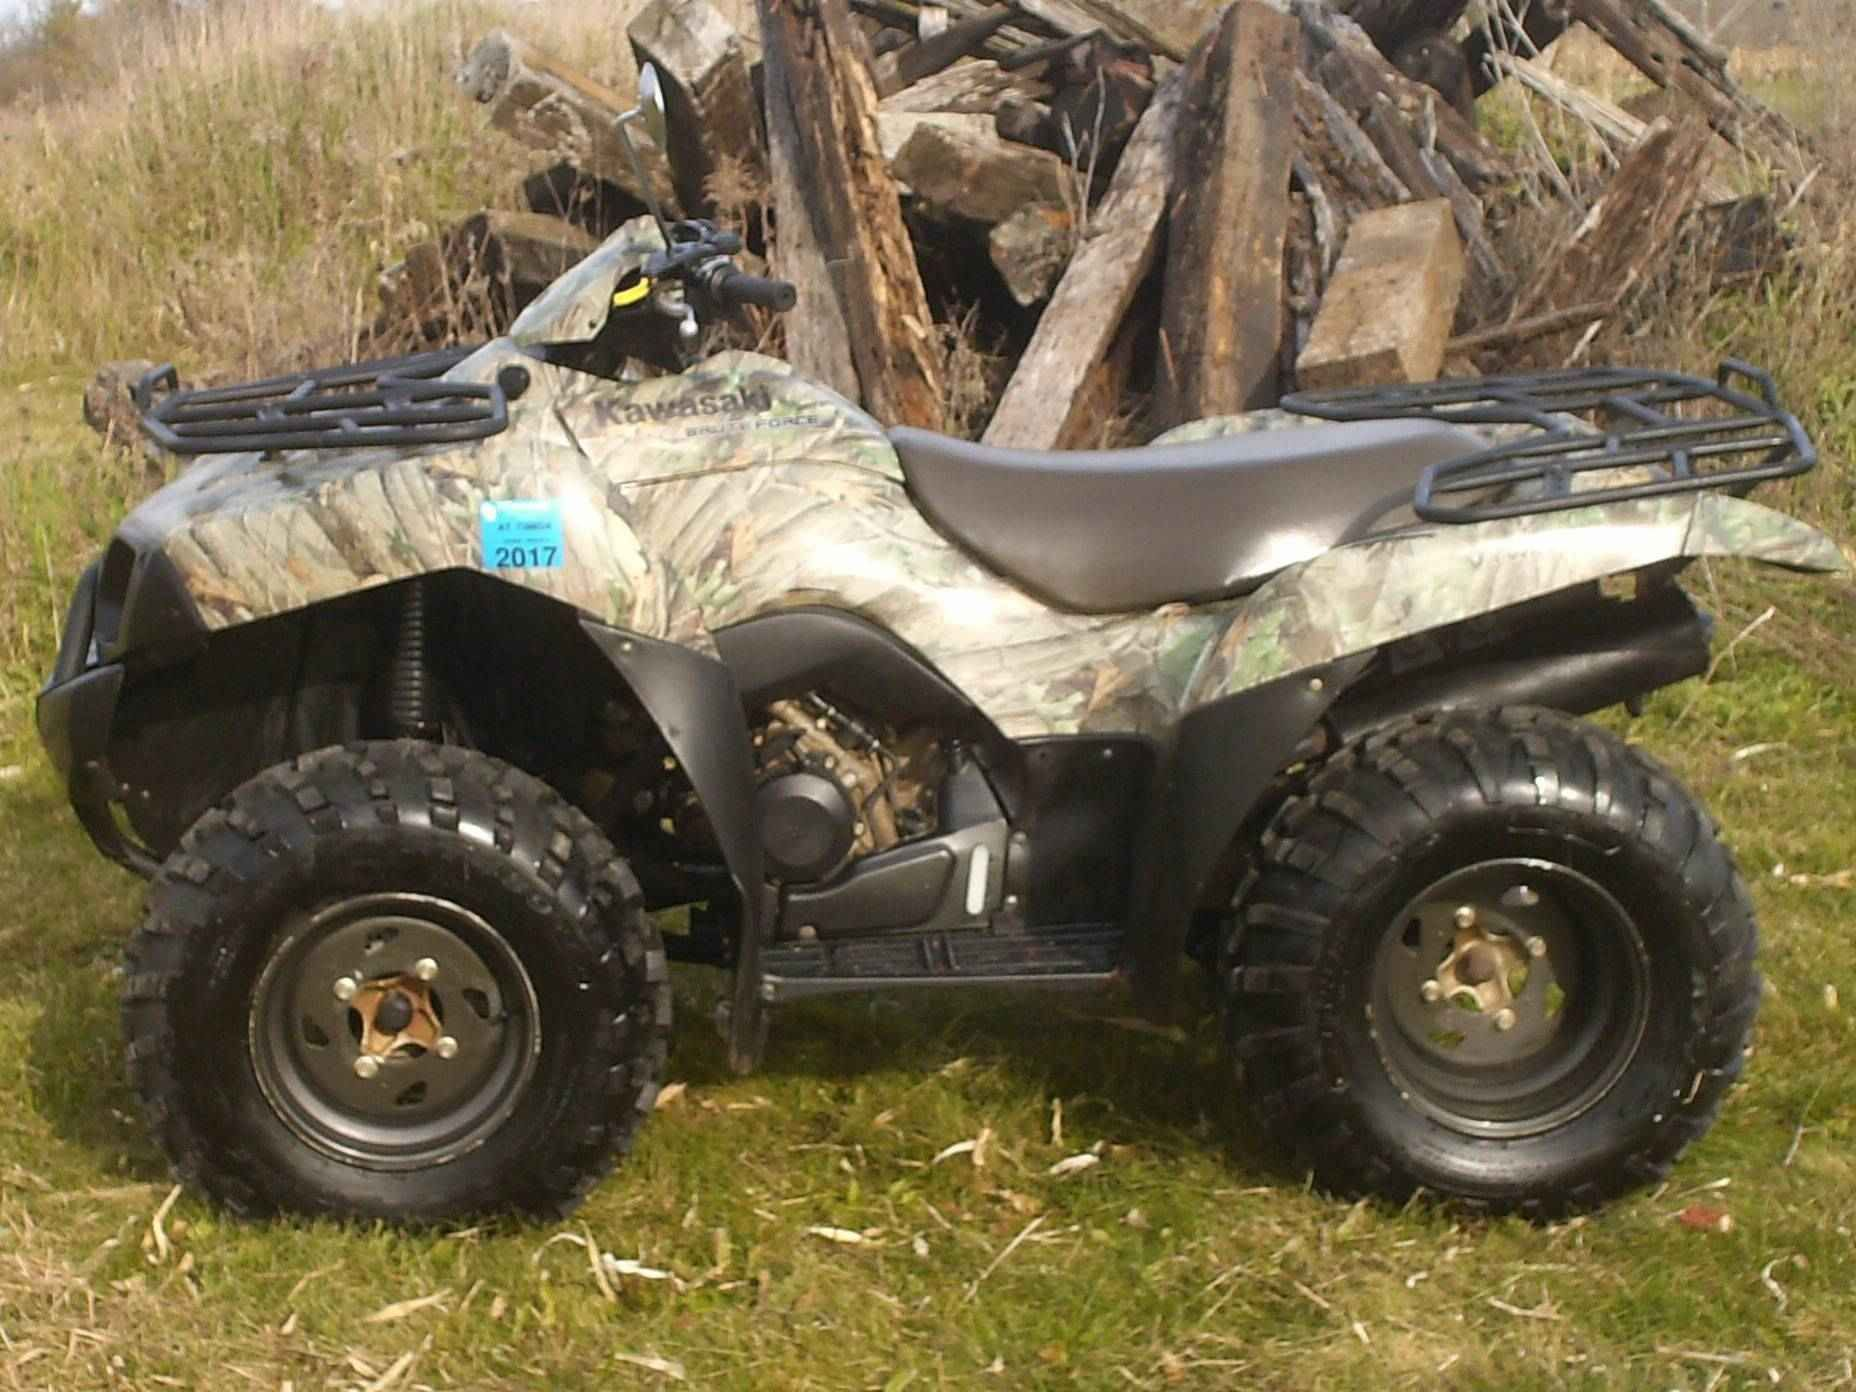 Used 2007 Kawasaki Brute Force 650 4x4 Atvs For Sale In Wisconsin